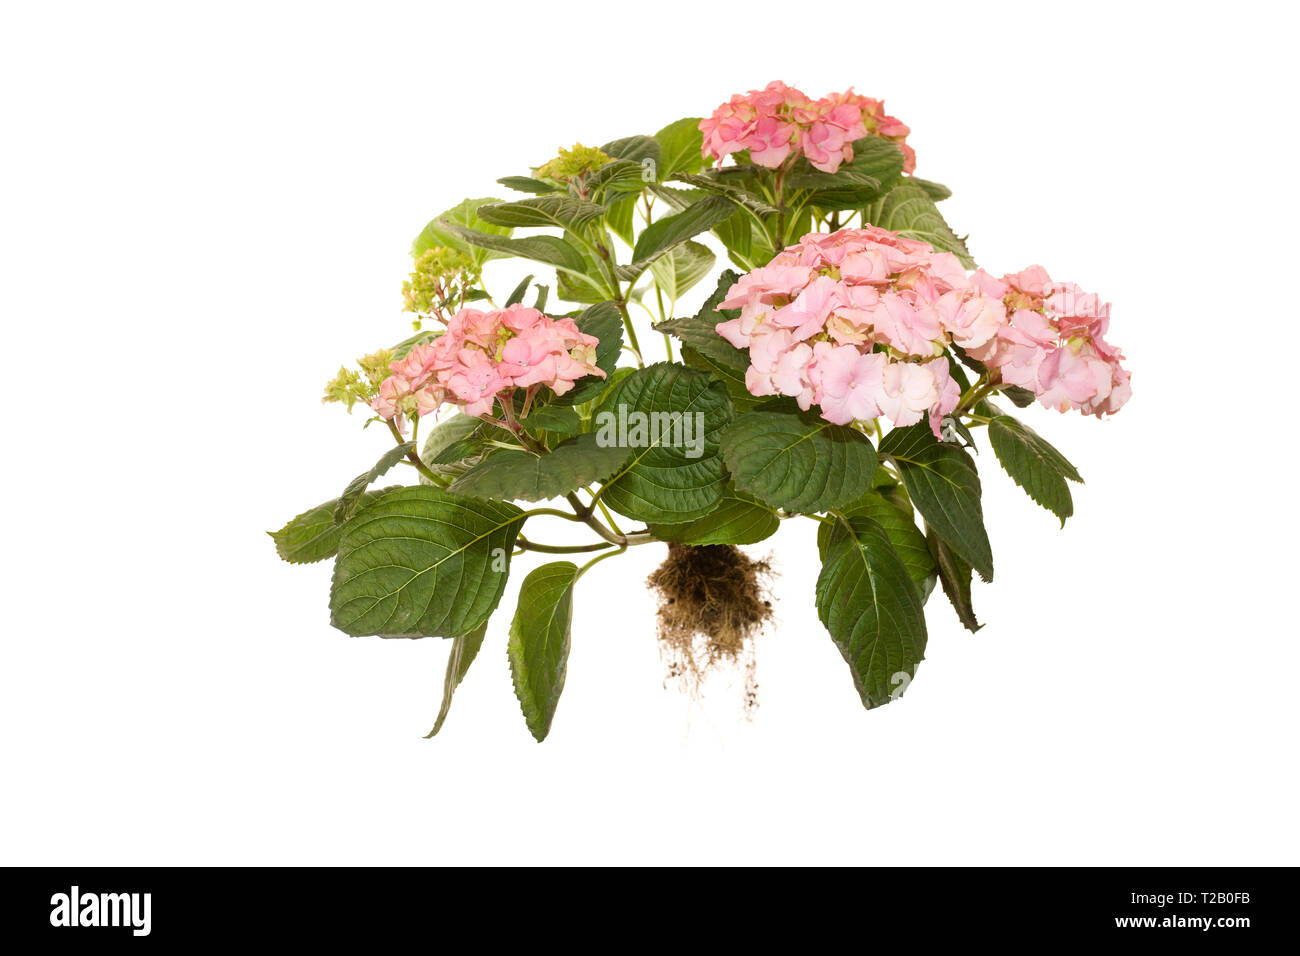 whole flowering hydrangea macrophylla rosita on isolated white background - Stock Image